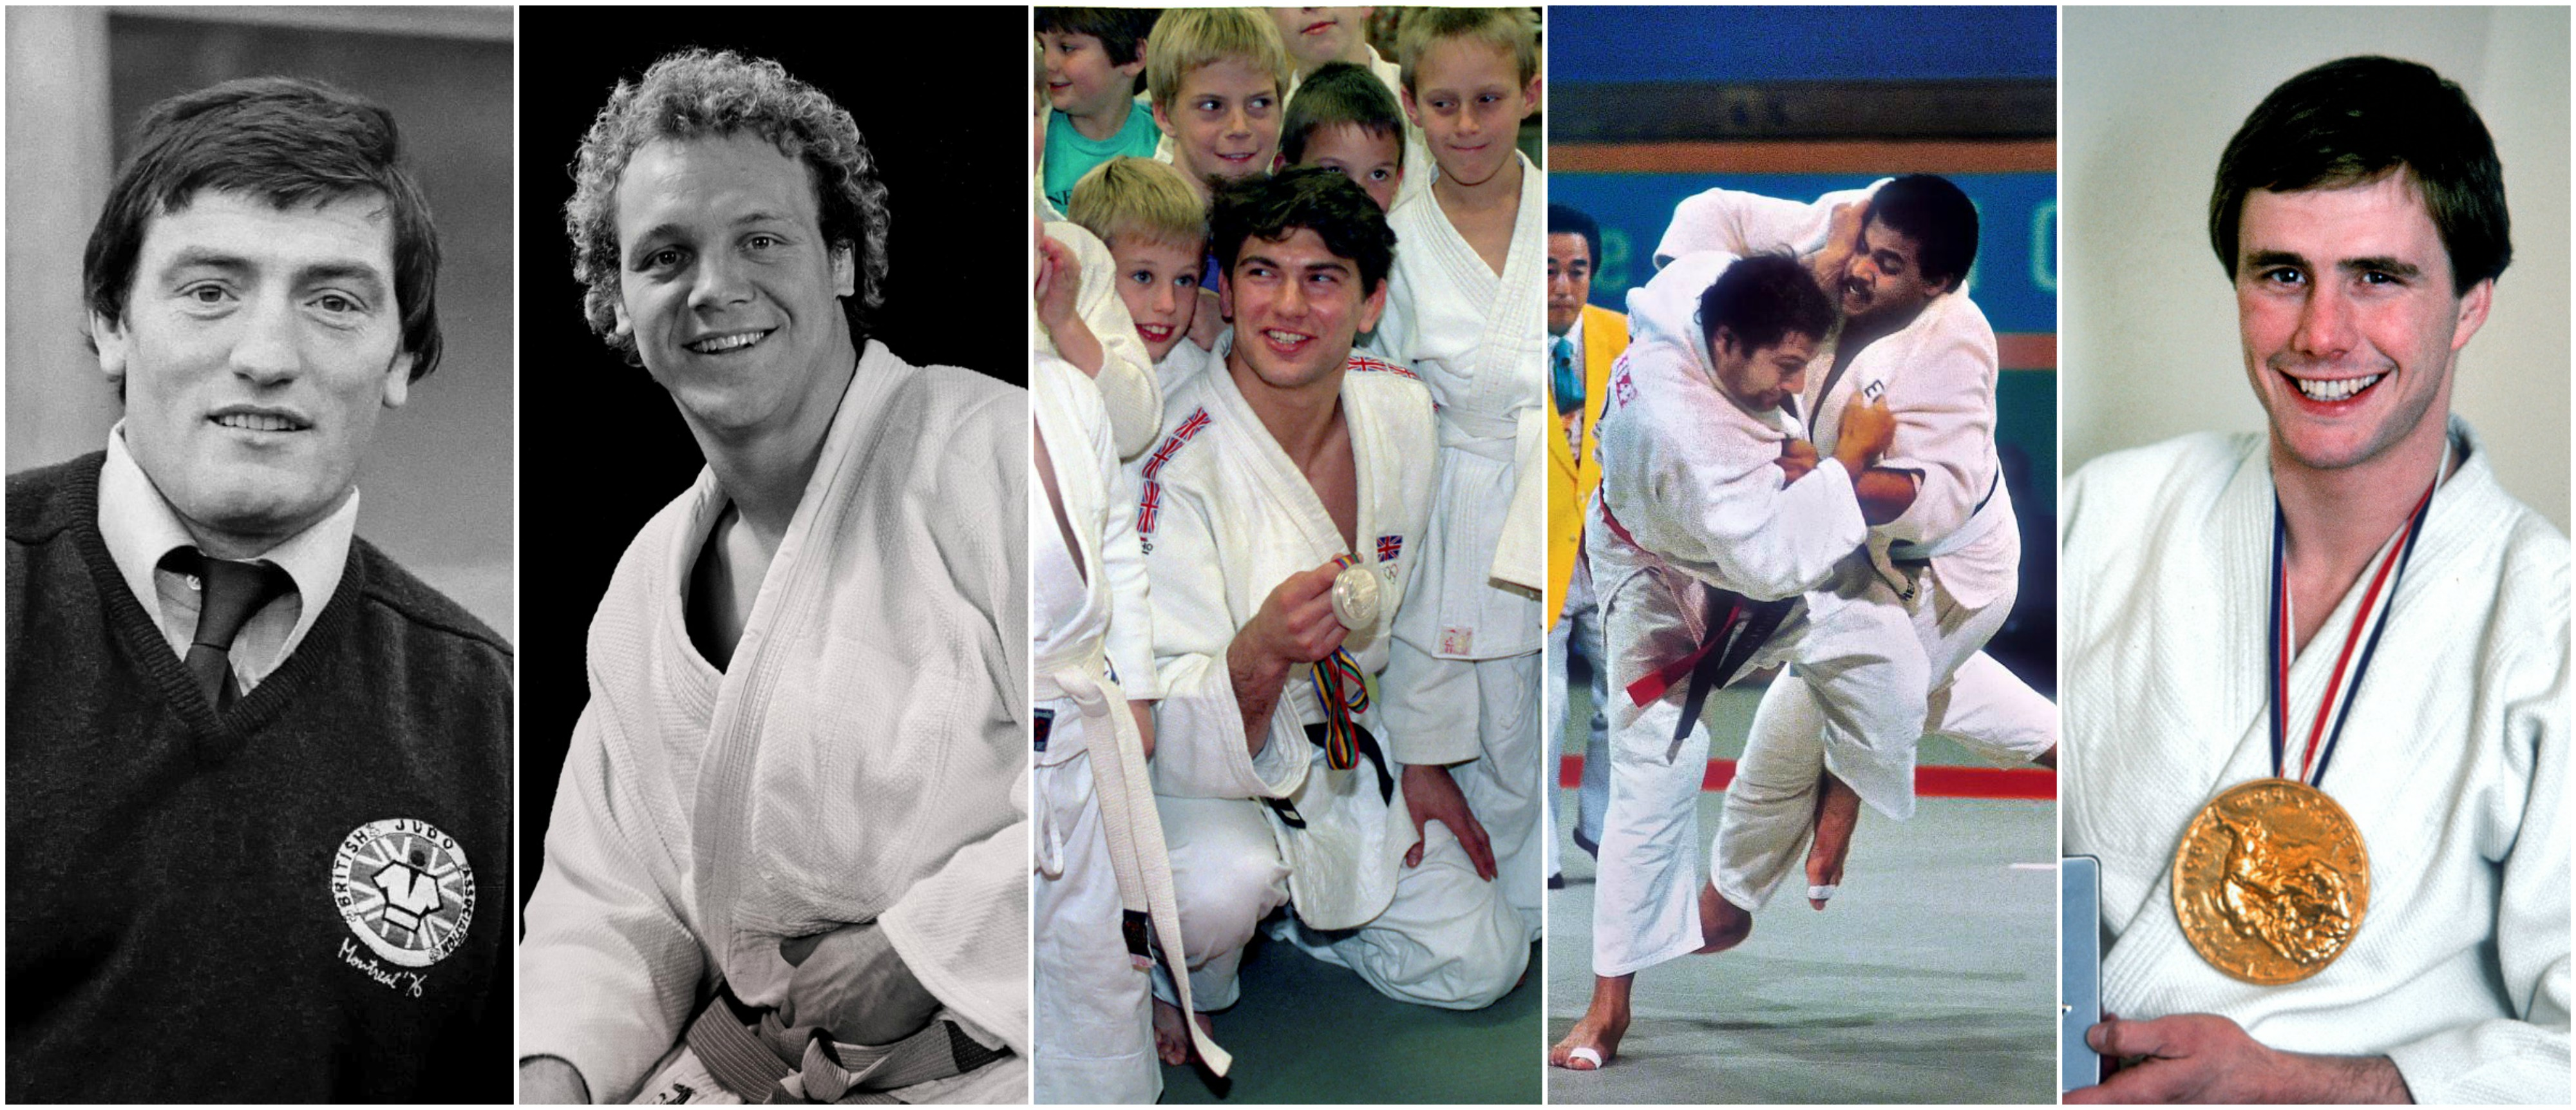 Malta Judo Federation & AD – Judo is not only a sport, but ...